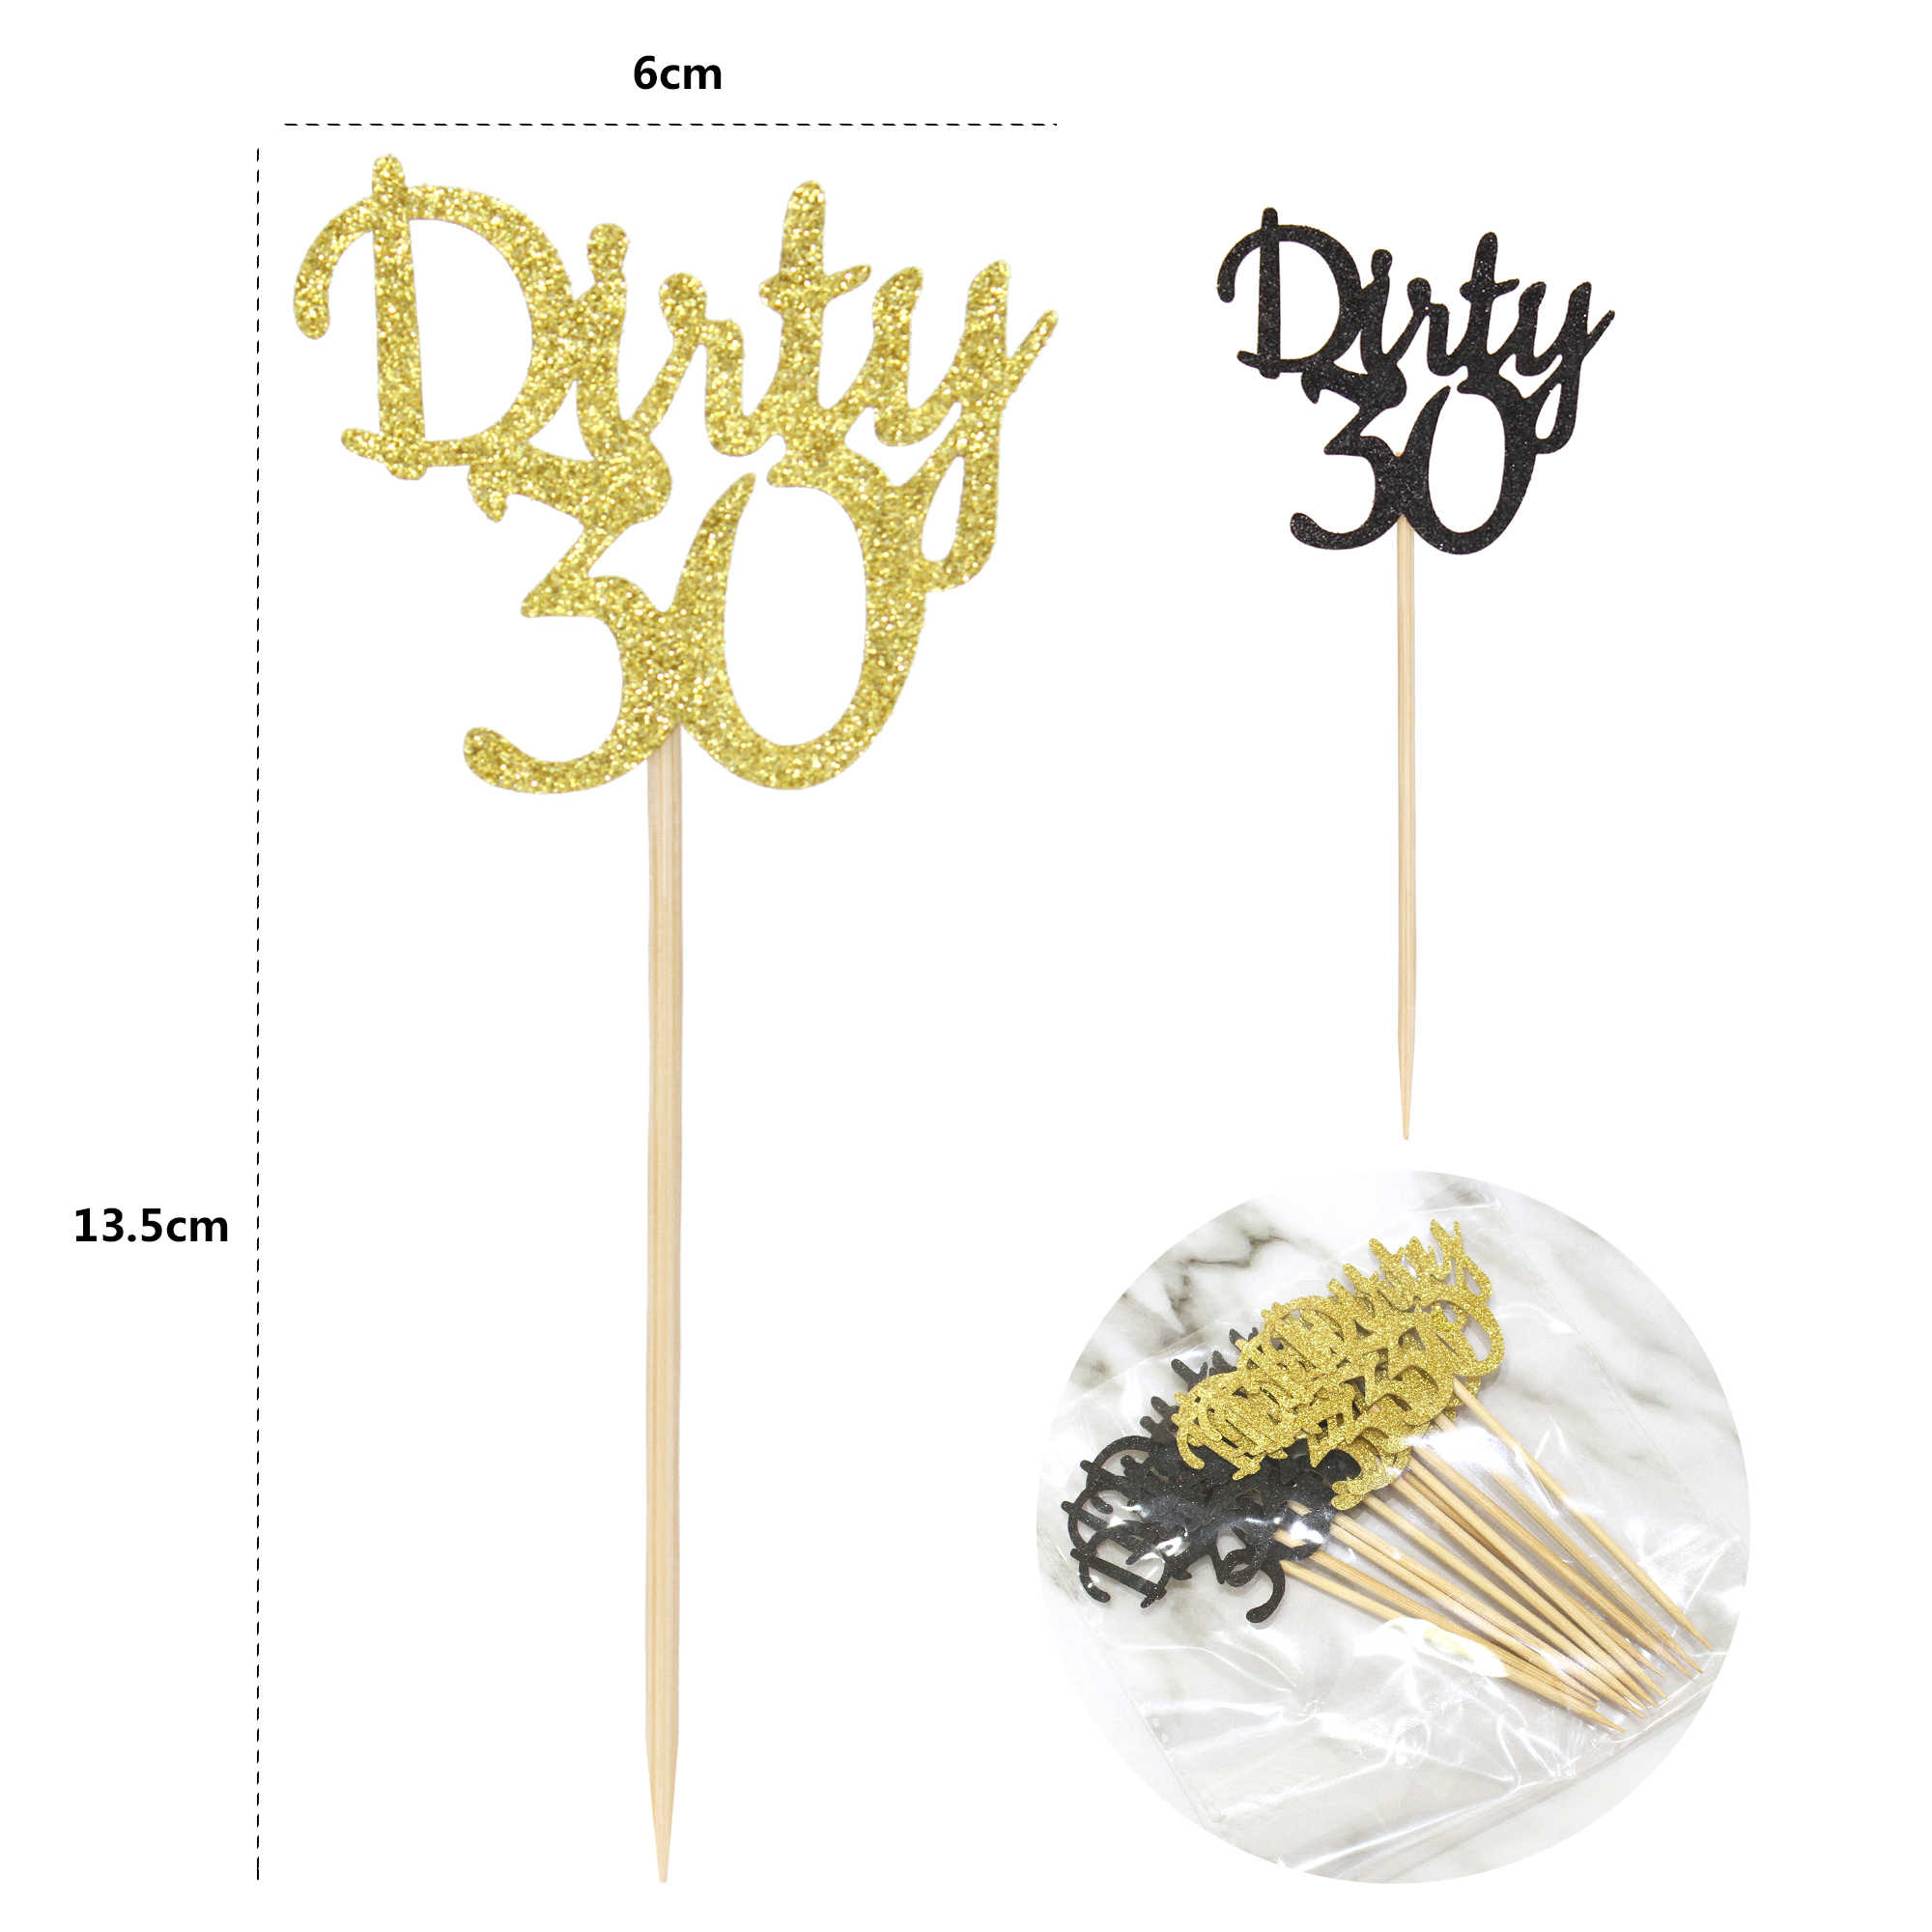 12pcs Gold and Black Glitter Dirty 30 Cupcake Toppers 30th Birthday Party  Favor Celebrating Anniversary Cake Picks Free Shipping| | - AliExpress